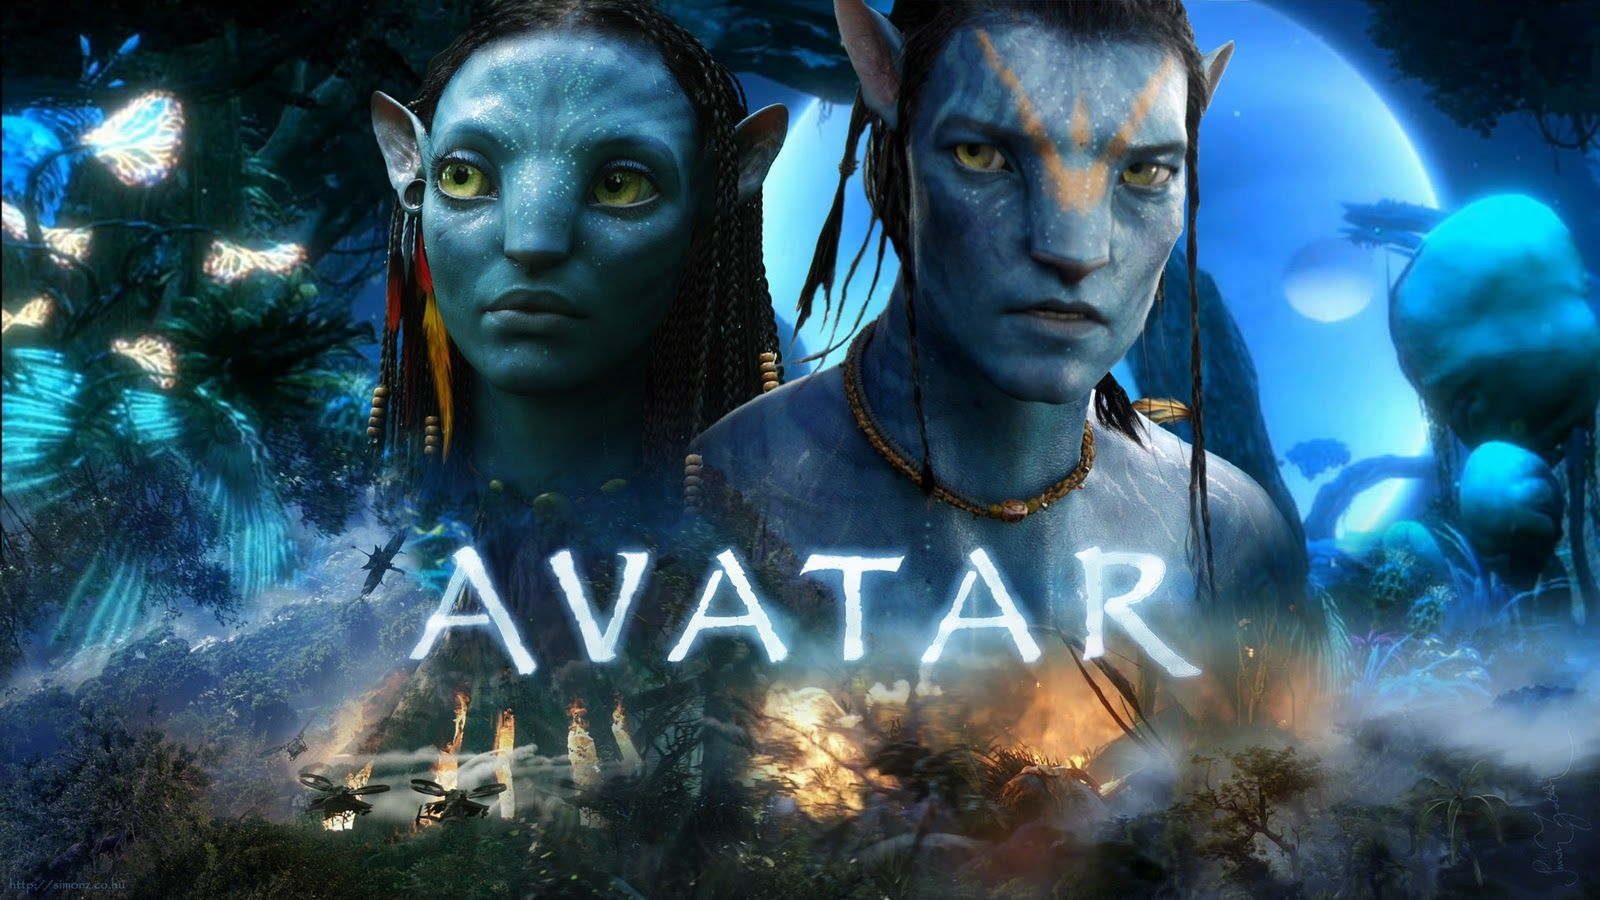 Hd pictures of movies avatar movie poster 1920 x 1080 hd avatar hd pictures of movies avatar movie poster 1920 x 1080 hd avatar movie hq voltagebd Image collections